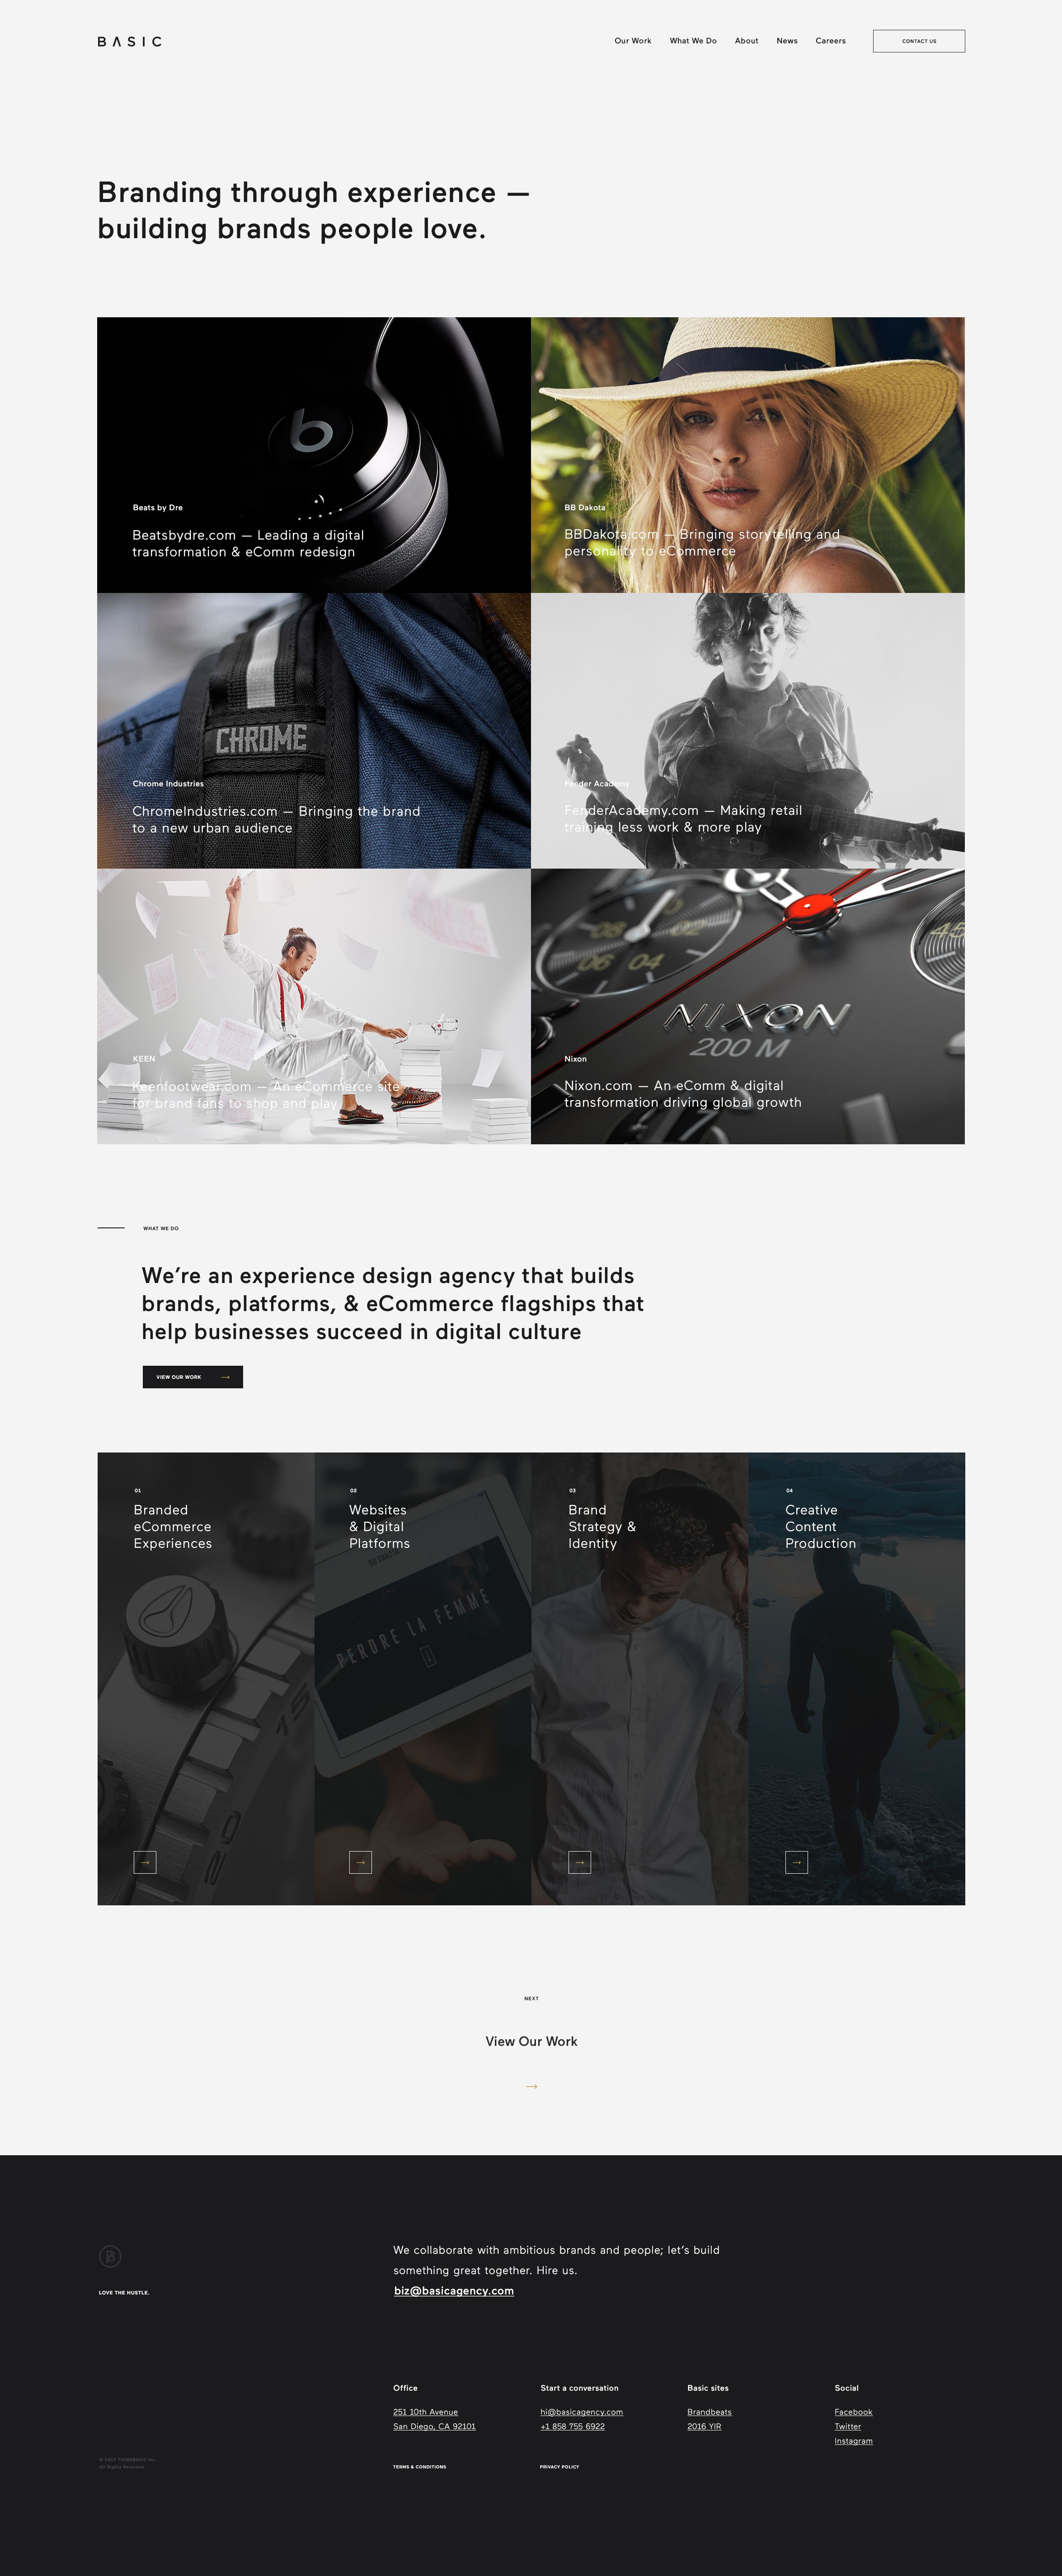 Basic Agency Website Design 2 2 Agency Website Design Website Design Web Design Agency